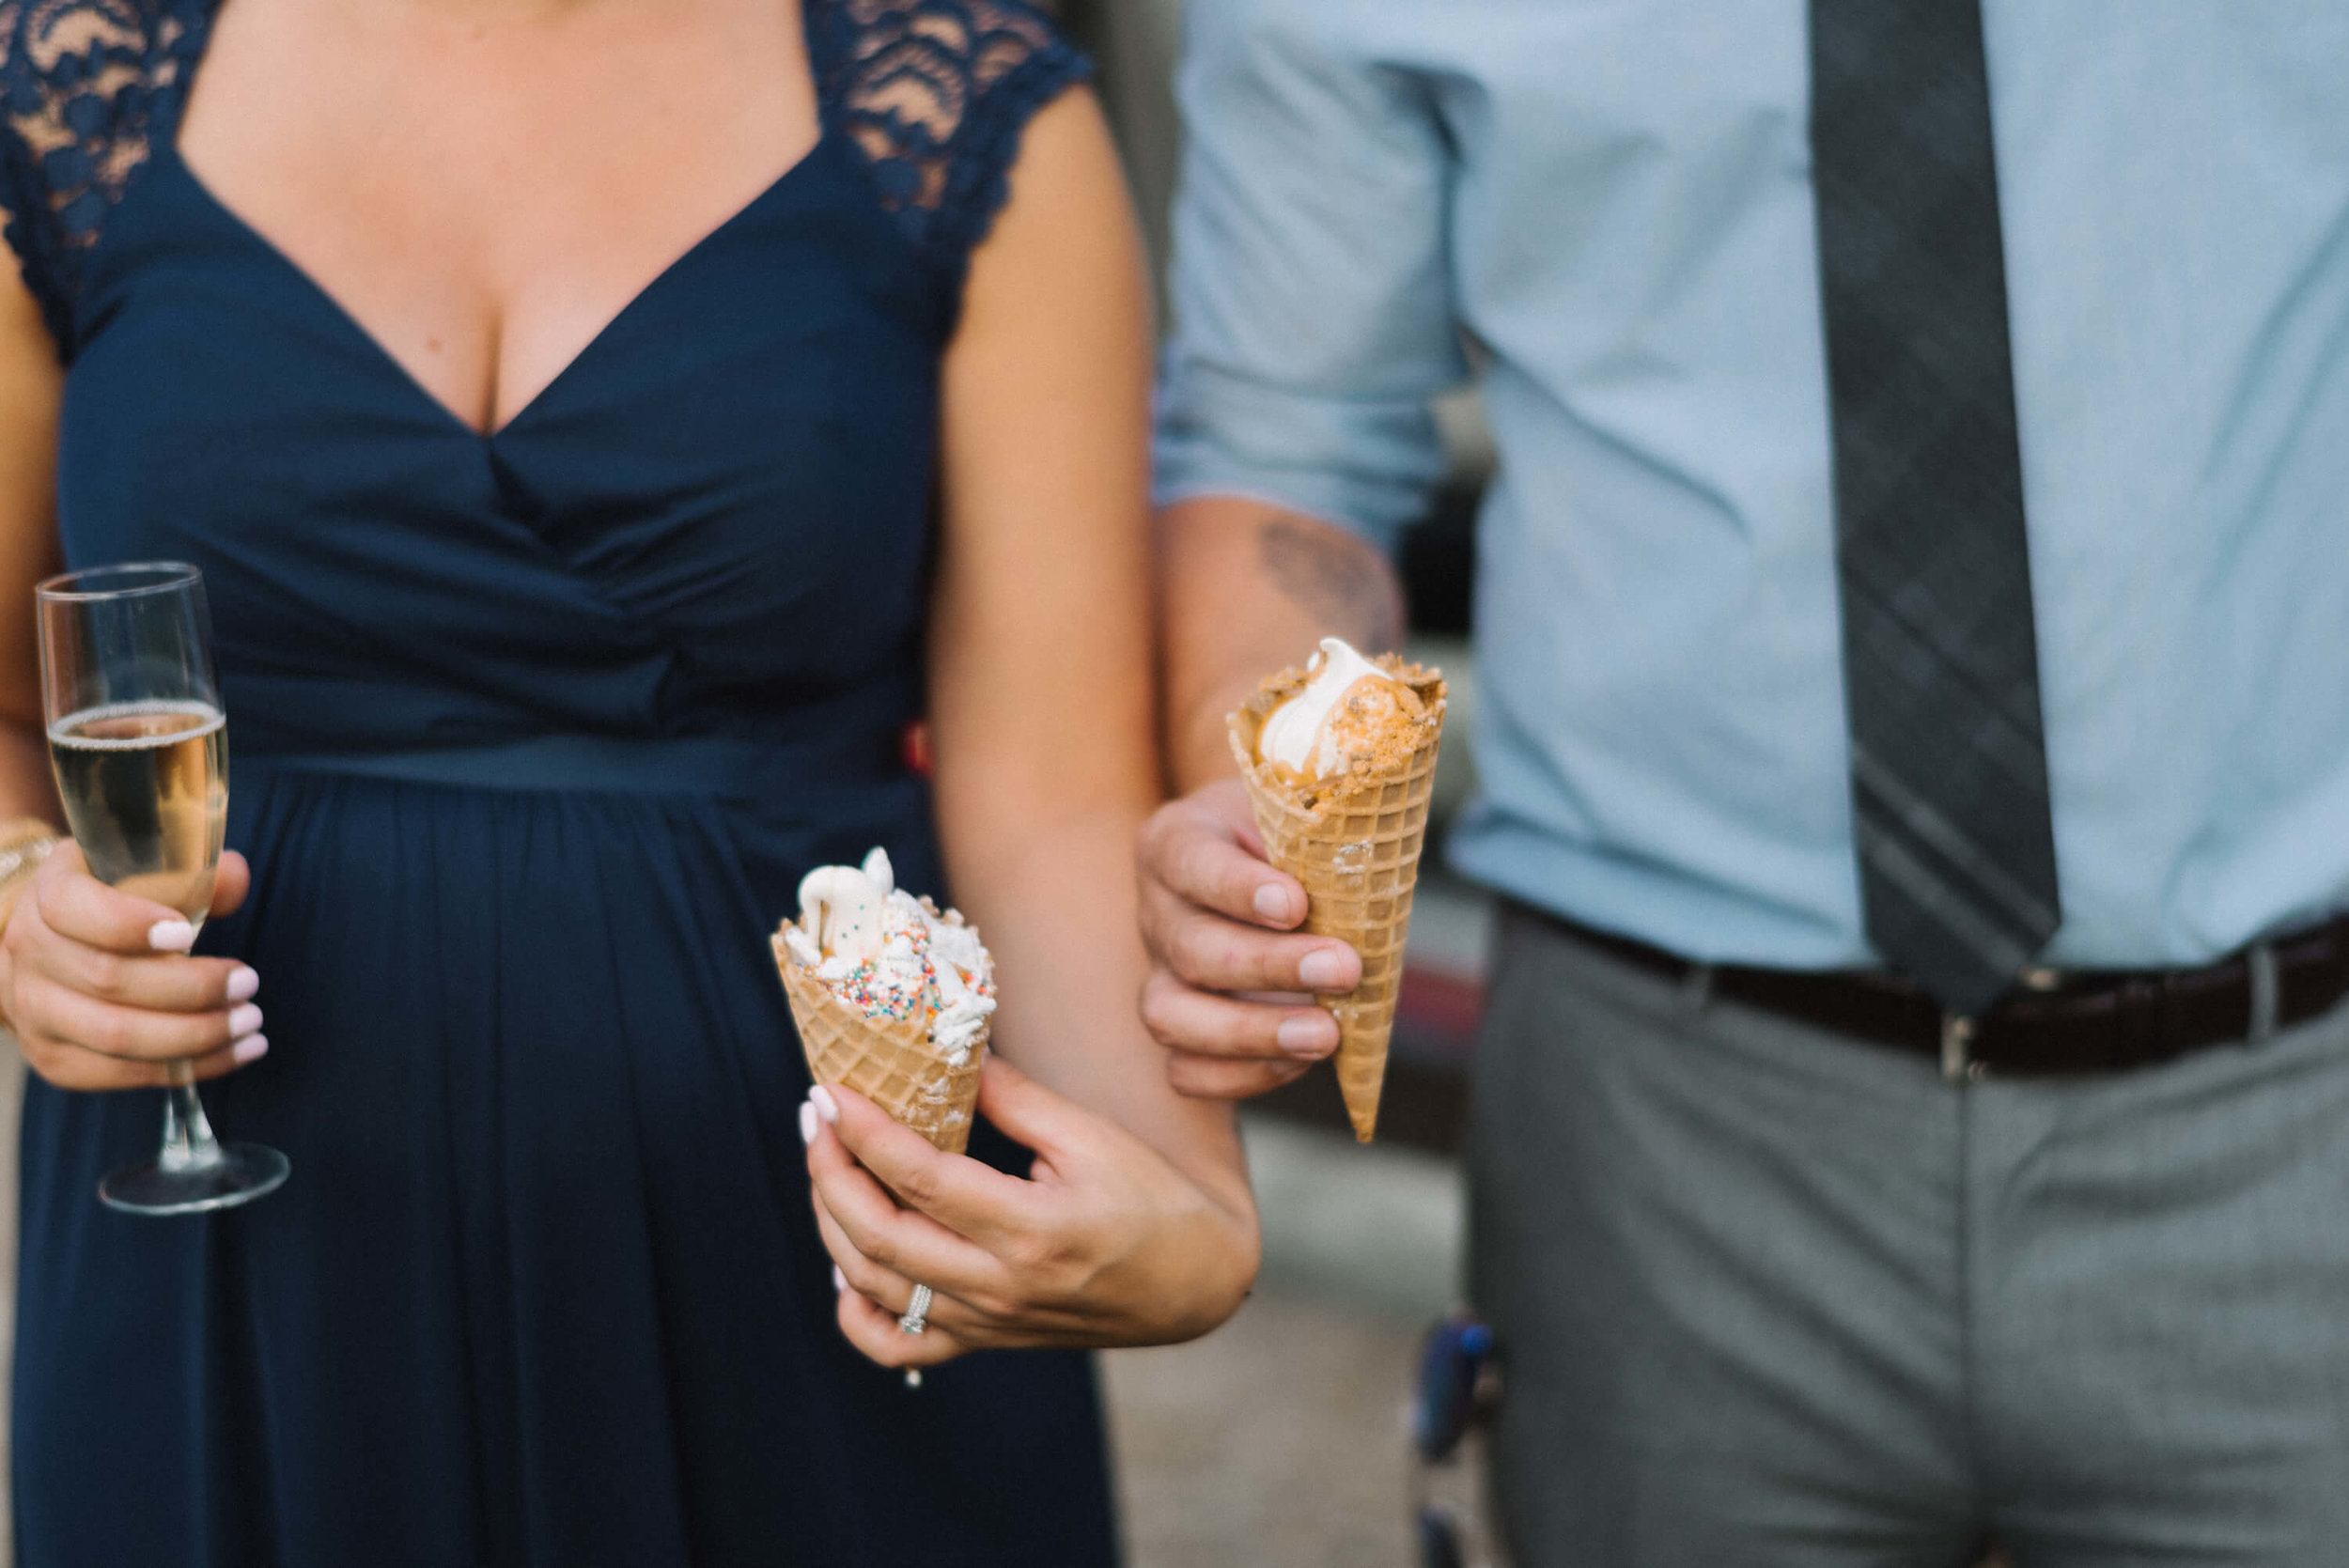 MN Nicecream truck cones at wedding | Jonny and Liz Minnesota Wedding Photographers | Sixpence day of coordinating at Gale Woods farm venue near the lake.JPG